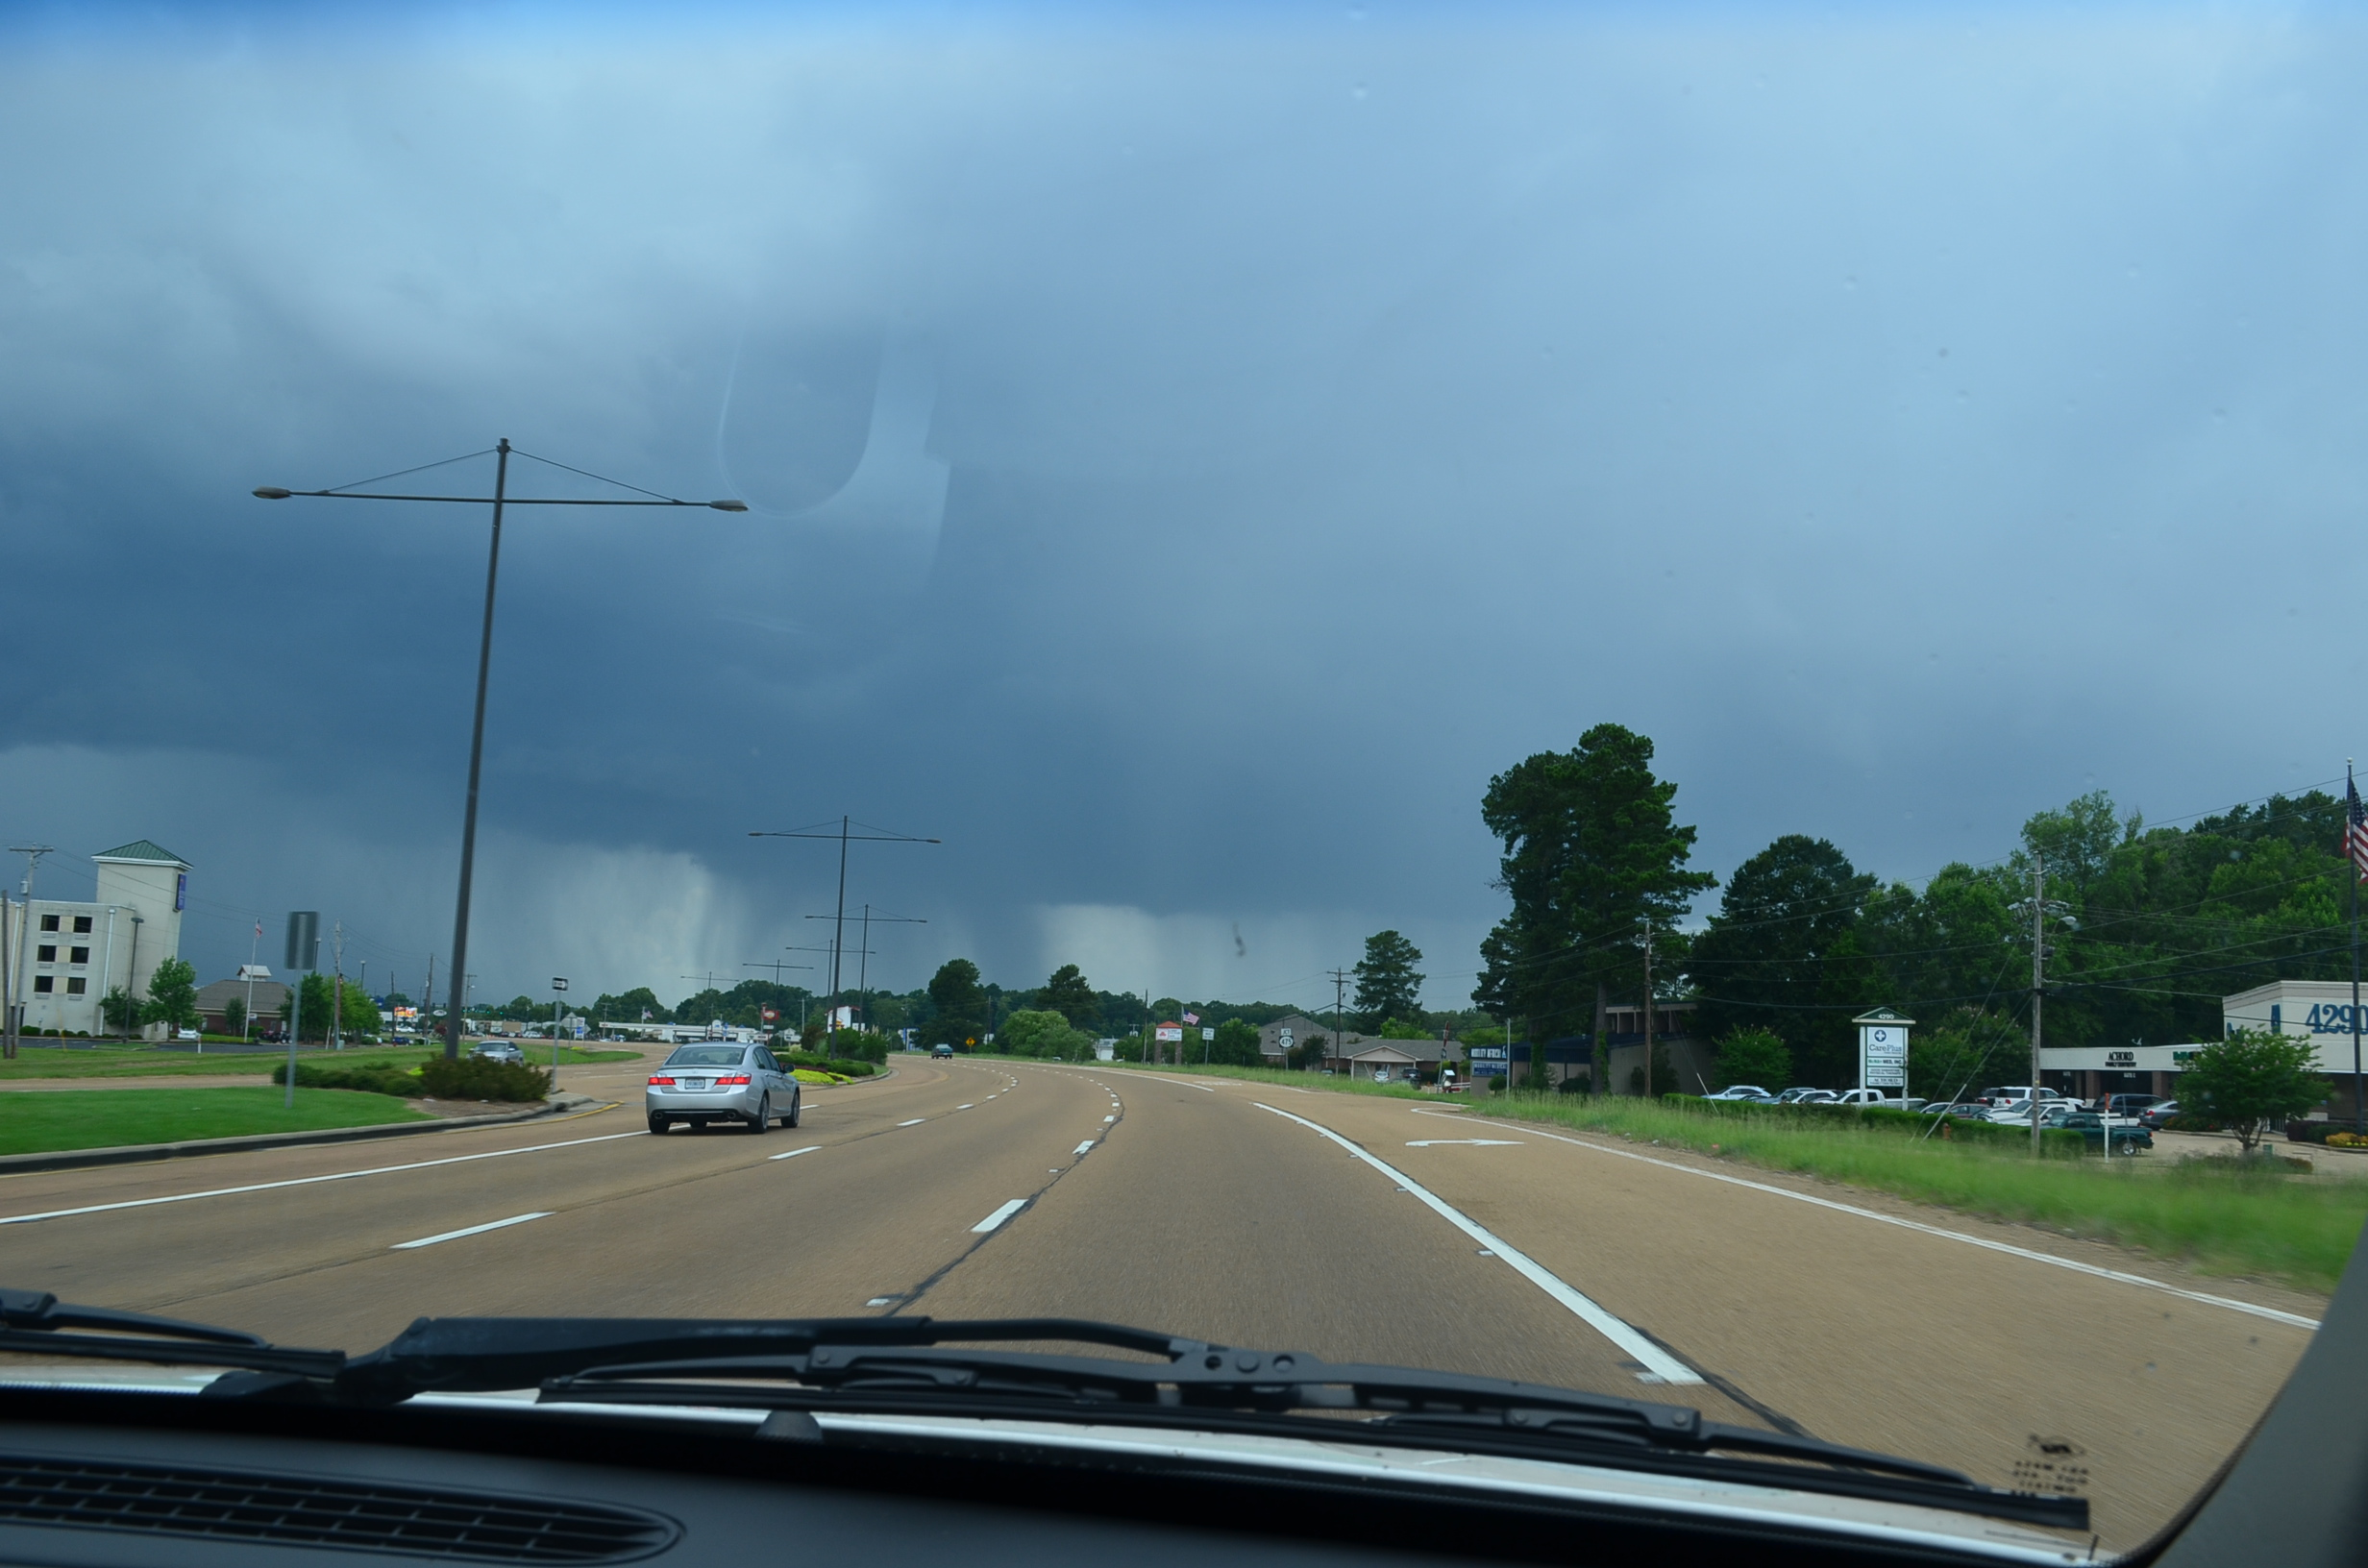 Heading into the Storm